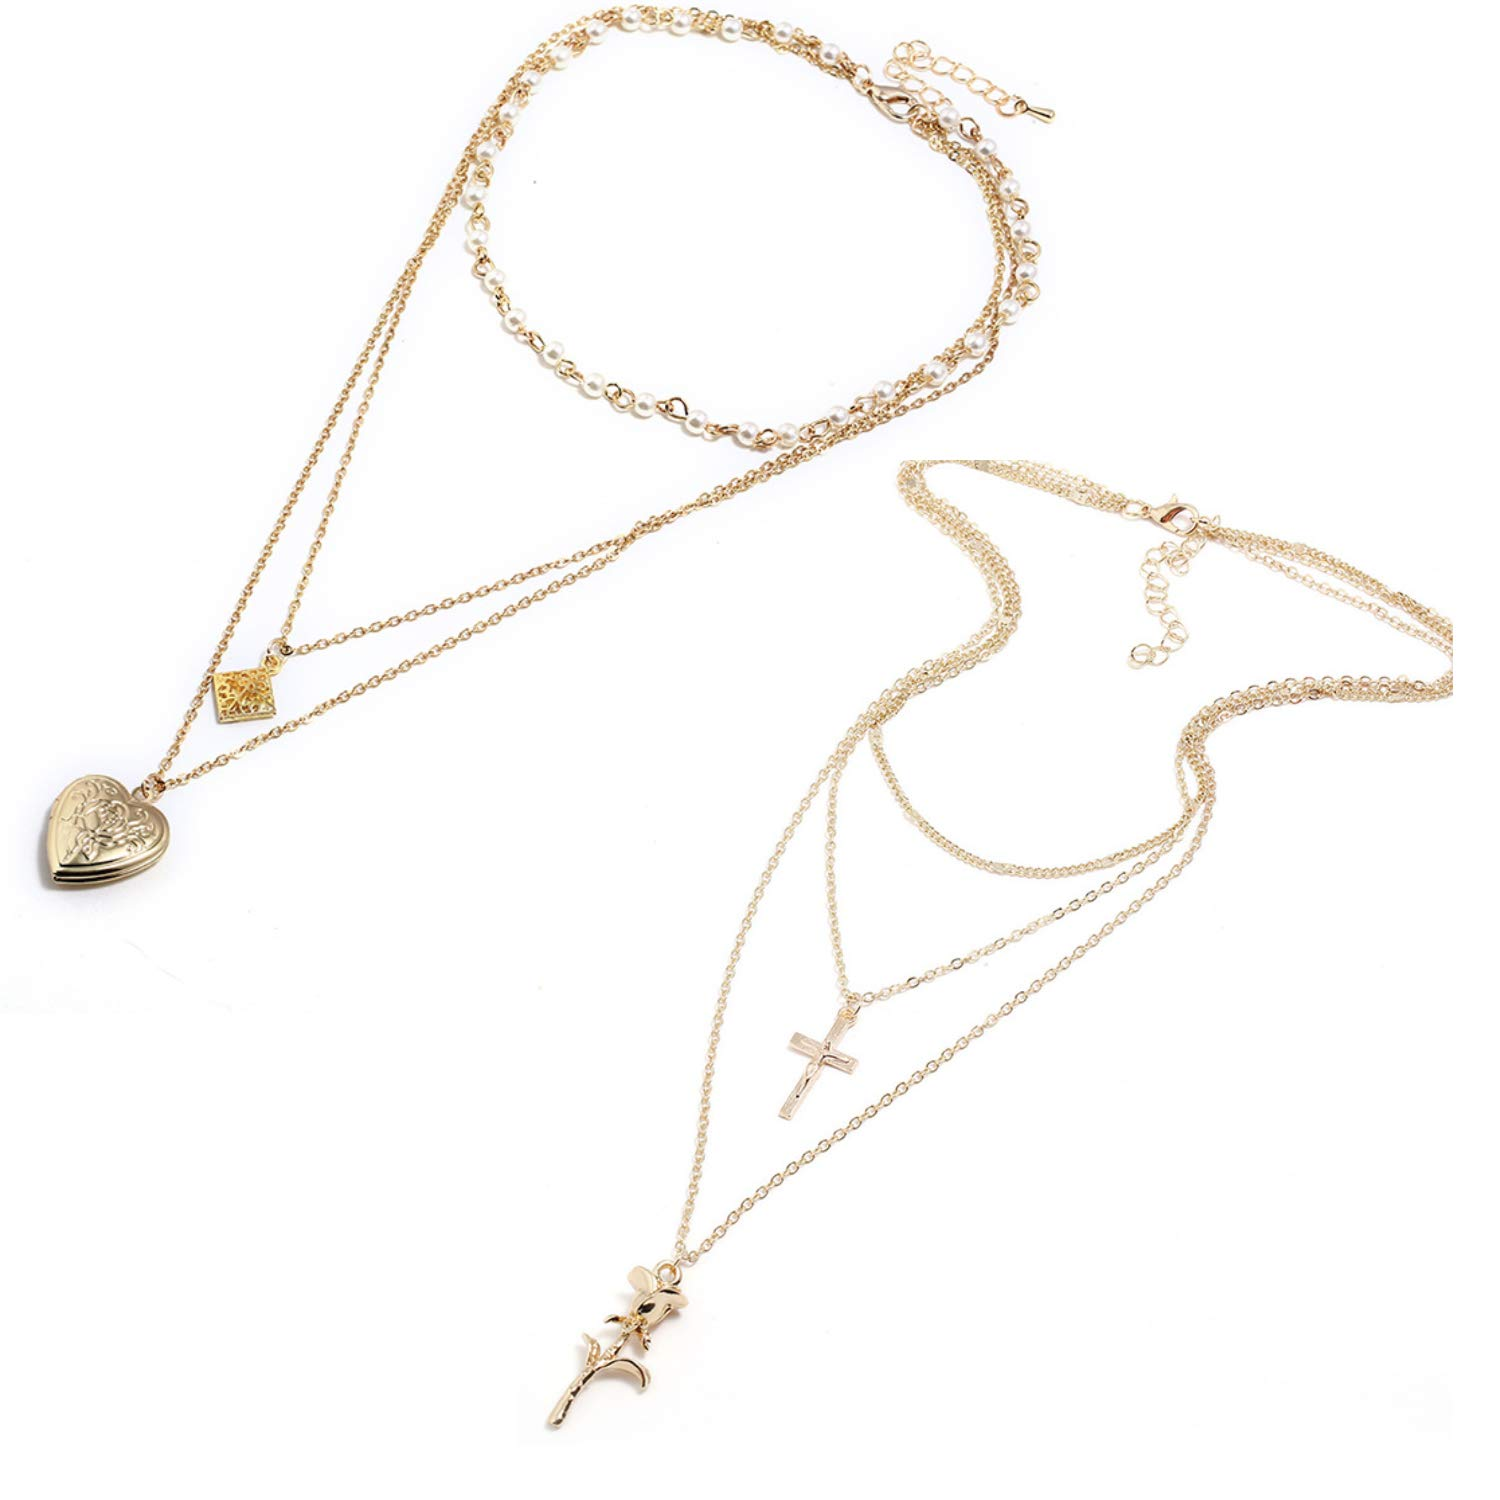 ISAACSONG.DESIGN Vintage Bohemian Statement Long Necklace for Women Gold Plated Star Healing Stone Charms (2 Pcs Rose Flower Set)